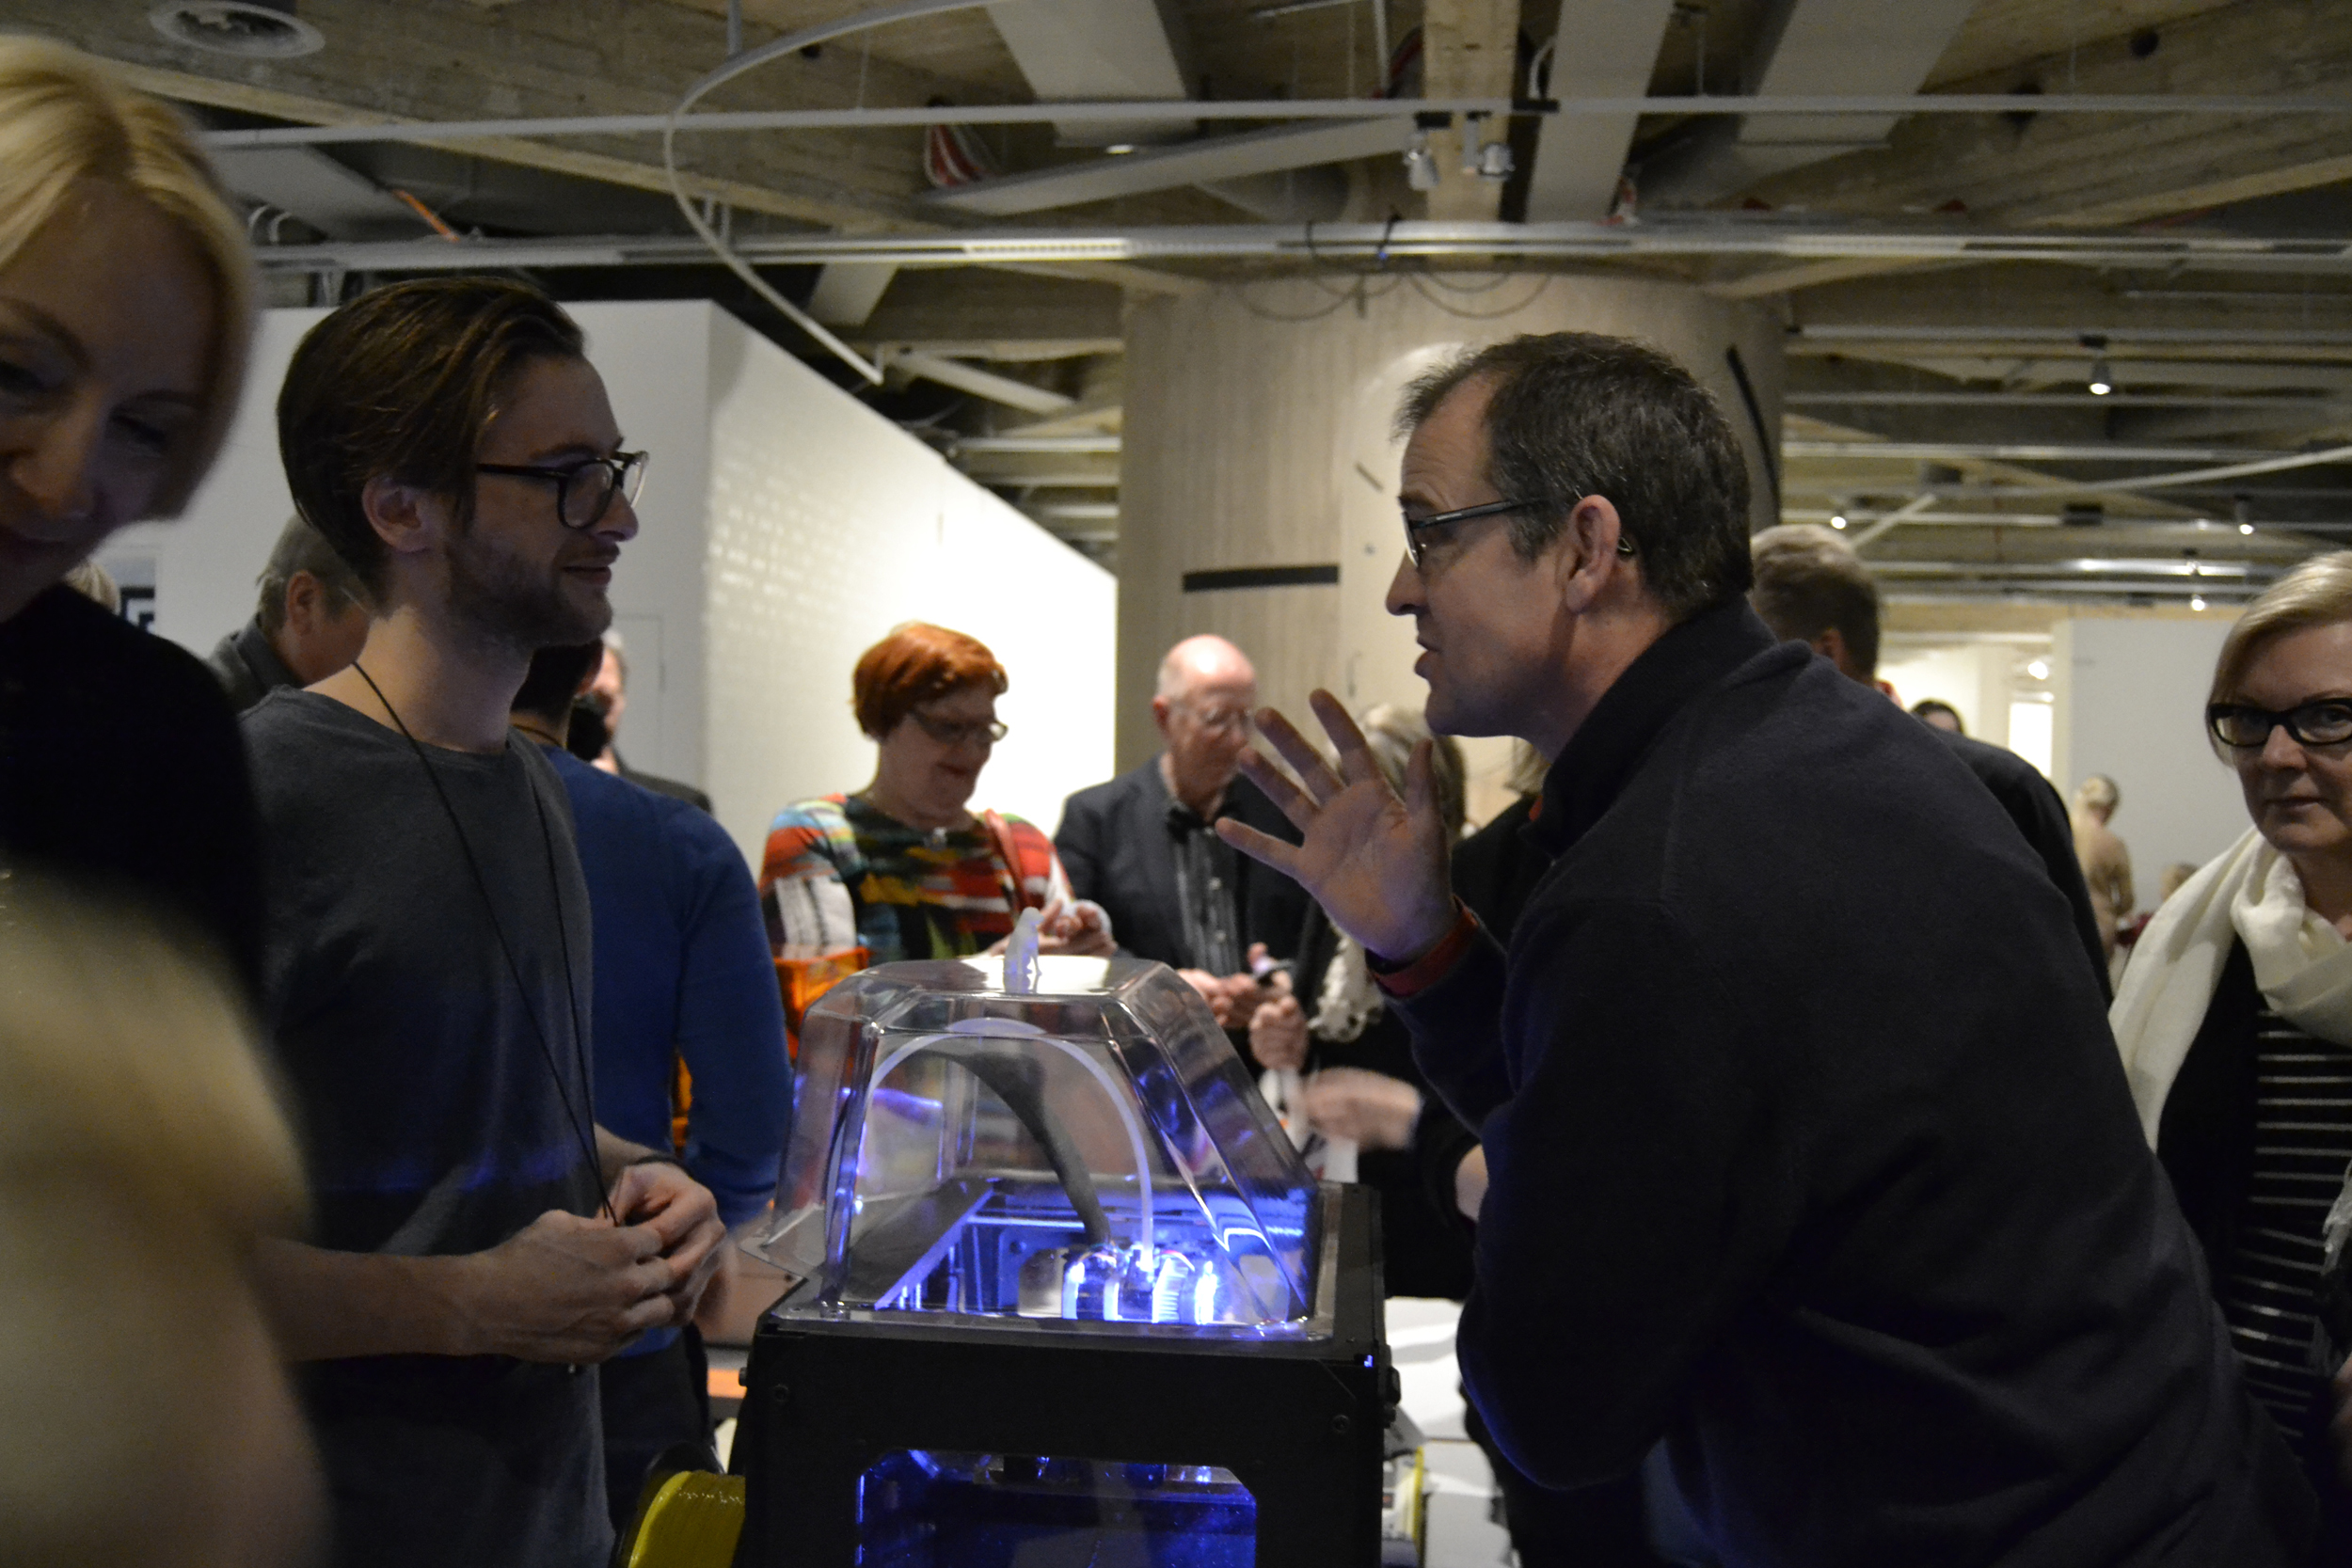 """""""This is the first time I'm seeing the process of the printing, although I've seen 3D printed items before,"""" said John Calton (on right), who discussed about the commercial possibilities of 3D printing technology with FabLab's Charlie Banthorpe (on left)."""